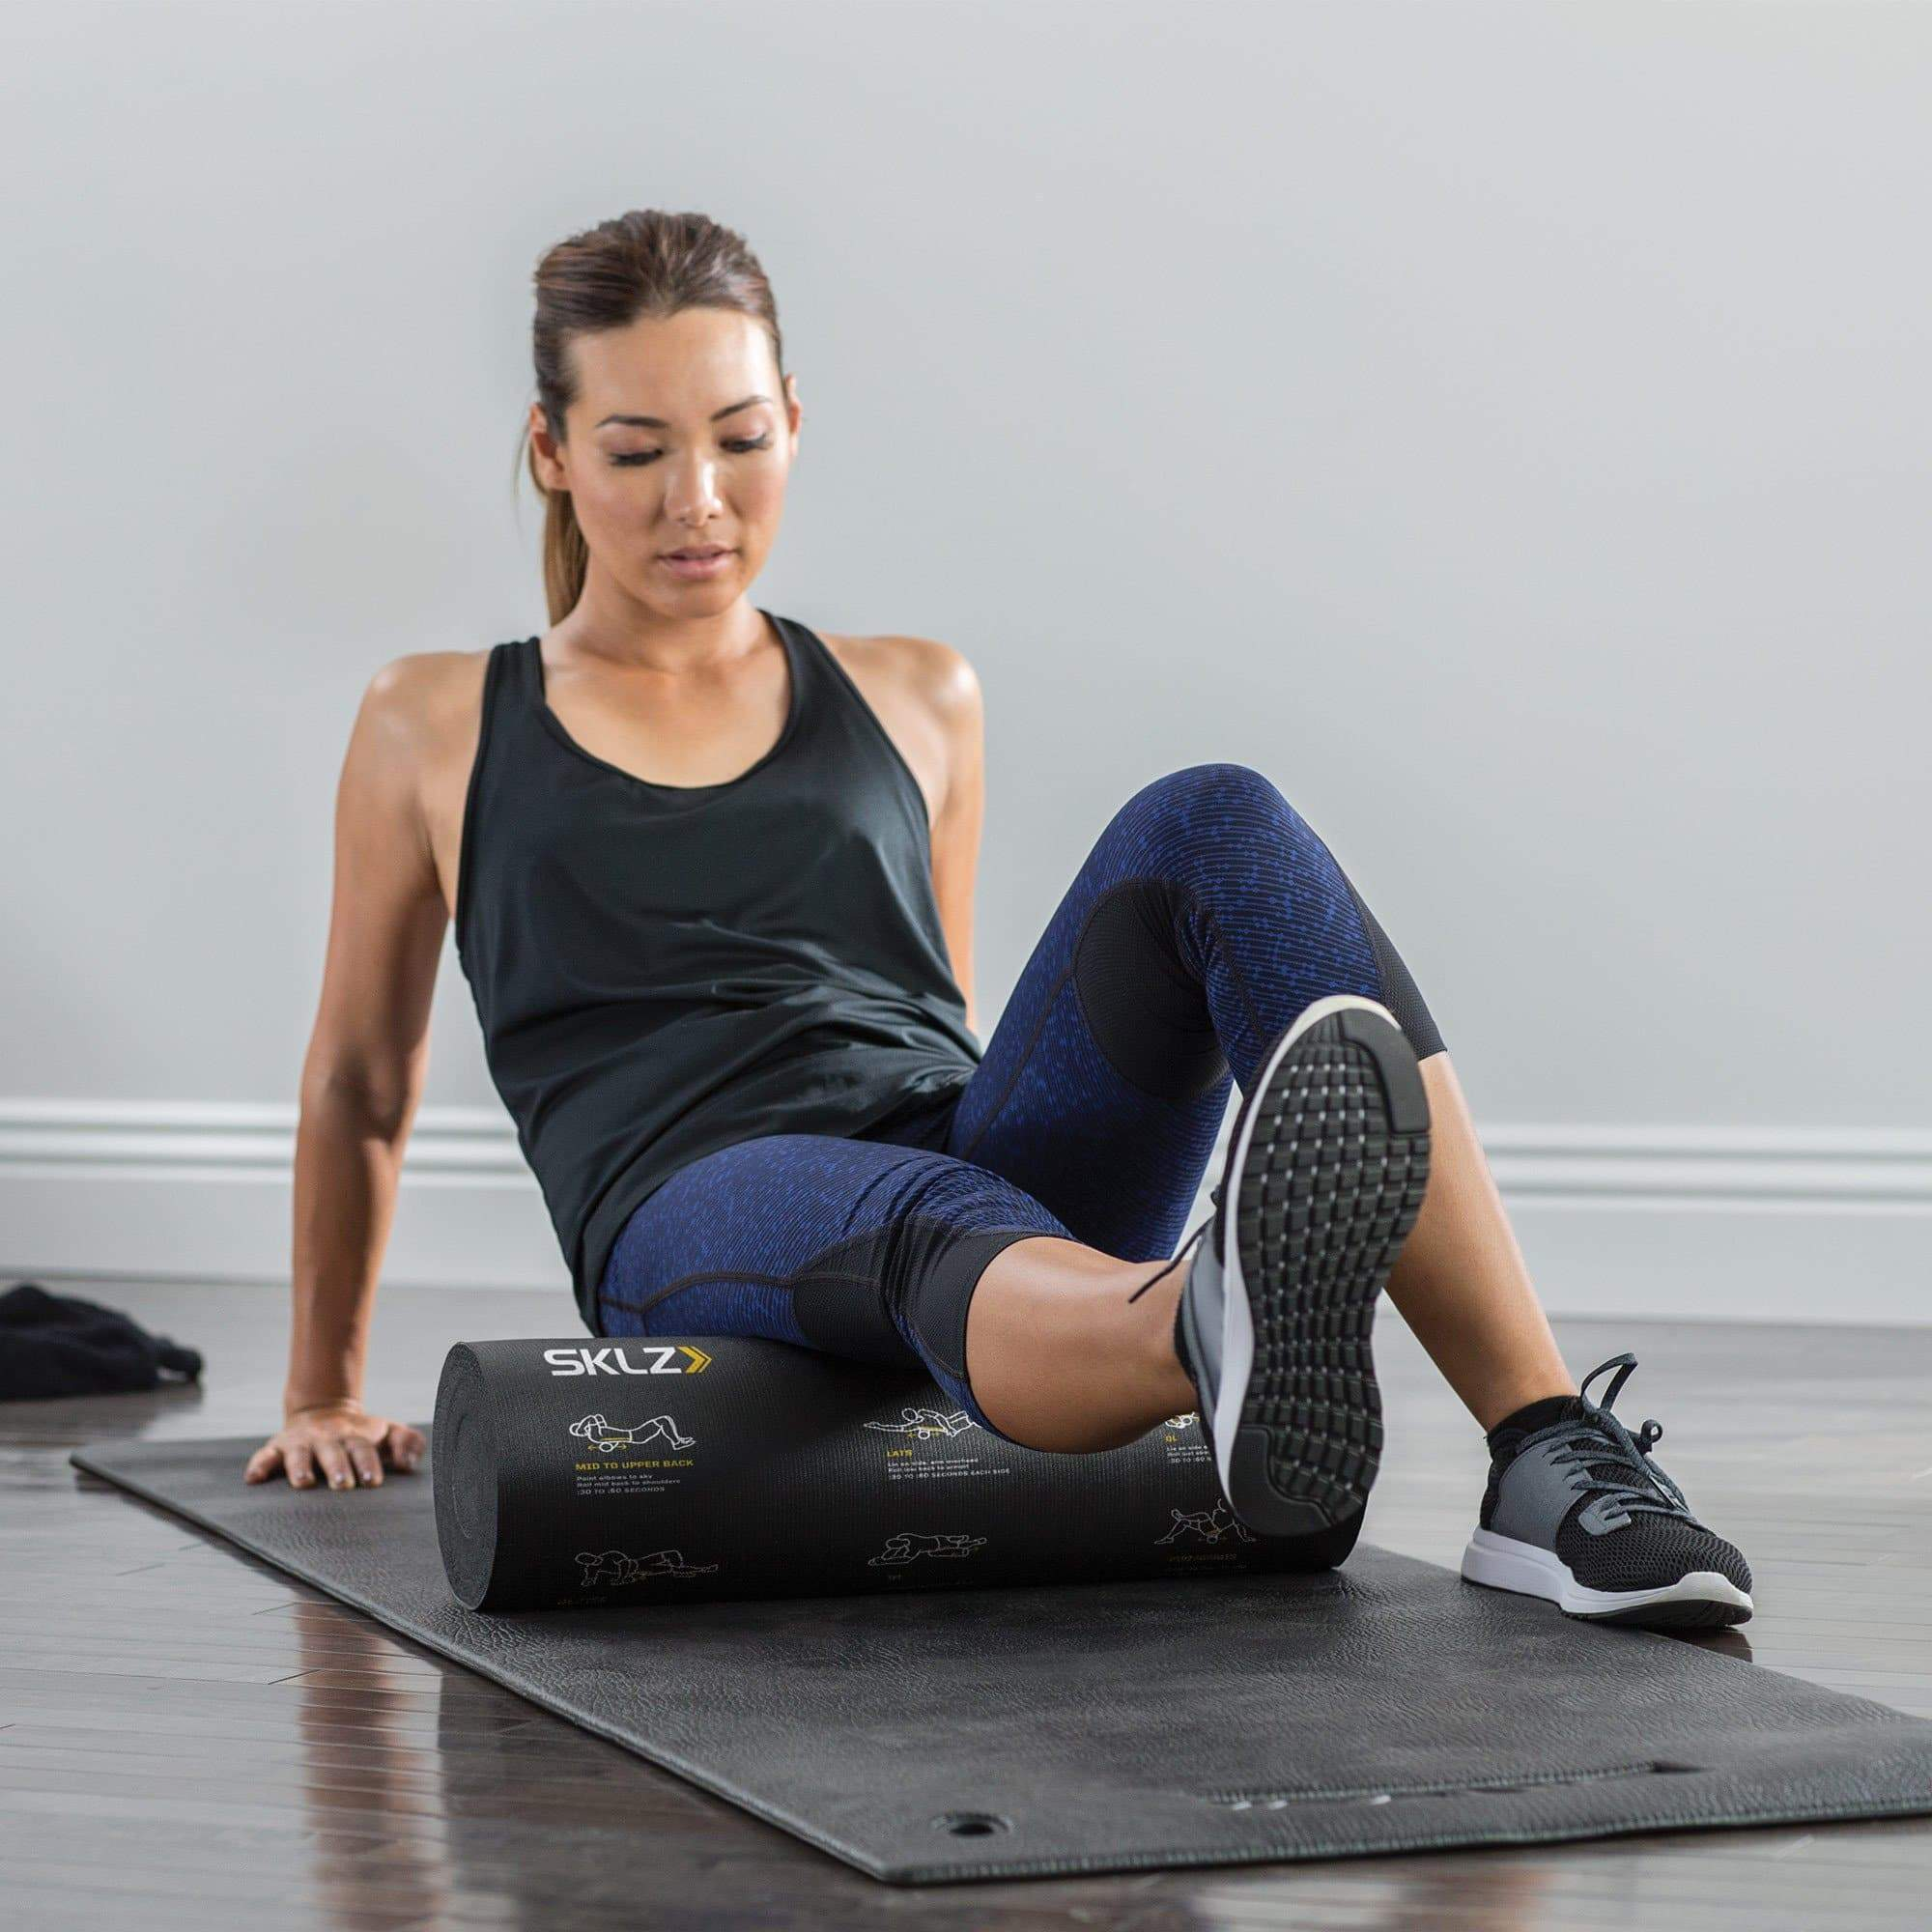 SKLZ Trainer Roller - Self-Guided Foam Roller